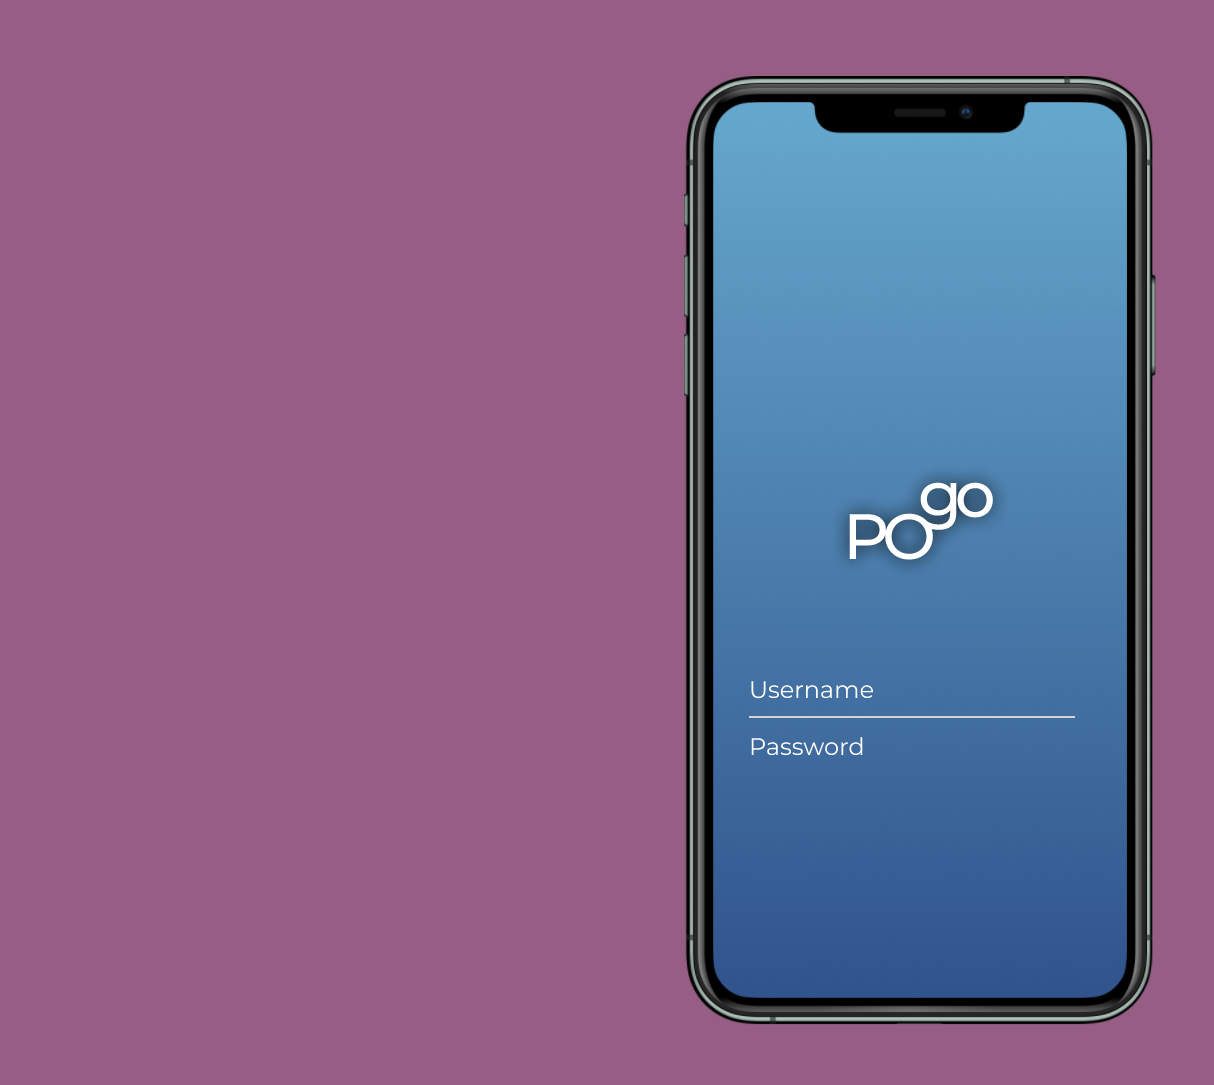 POgo IS DESIGNED FOR TRAVELING PRACTITIONERS